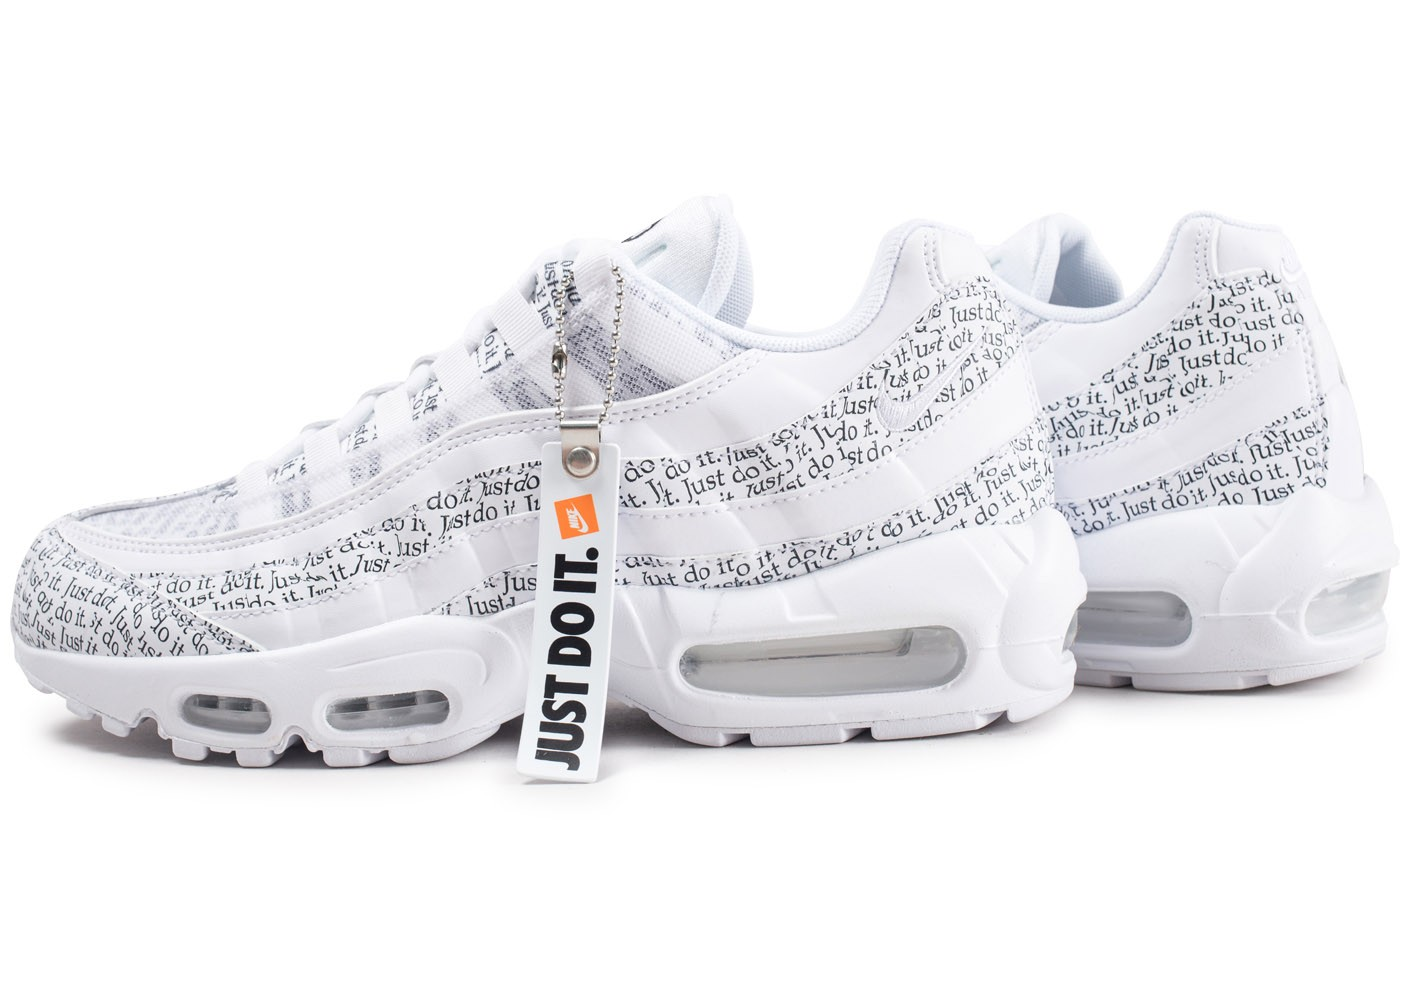 grande vente 5b05b 00baa Nike Air Max 95 SE blanche Just Do It - Chaussures Baskets ...